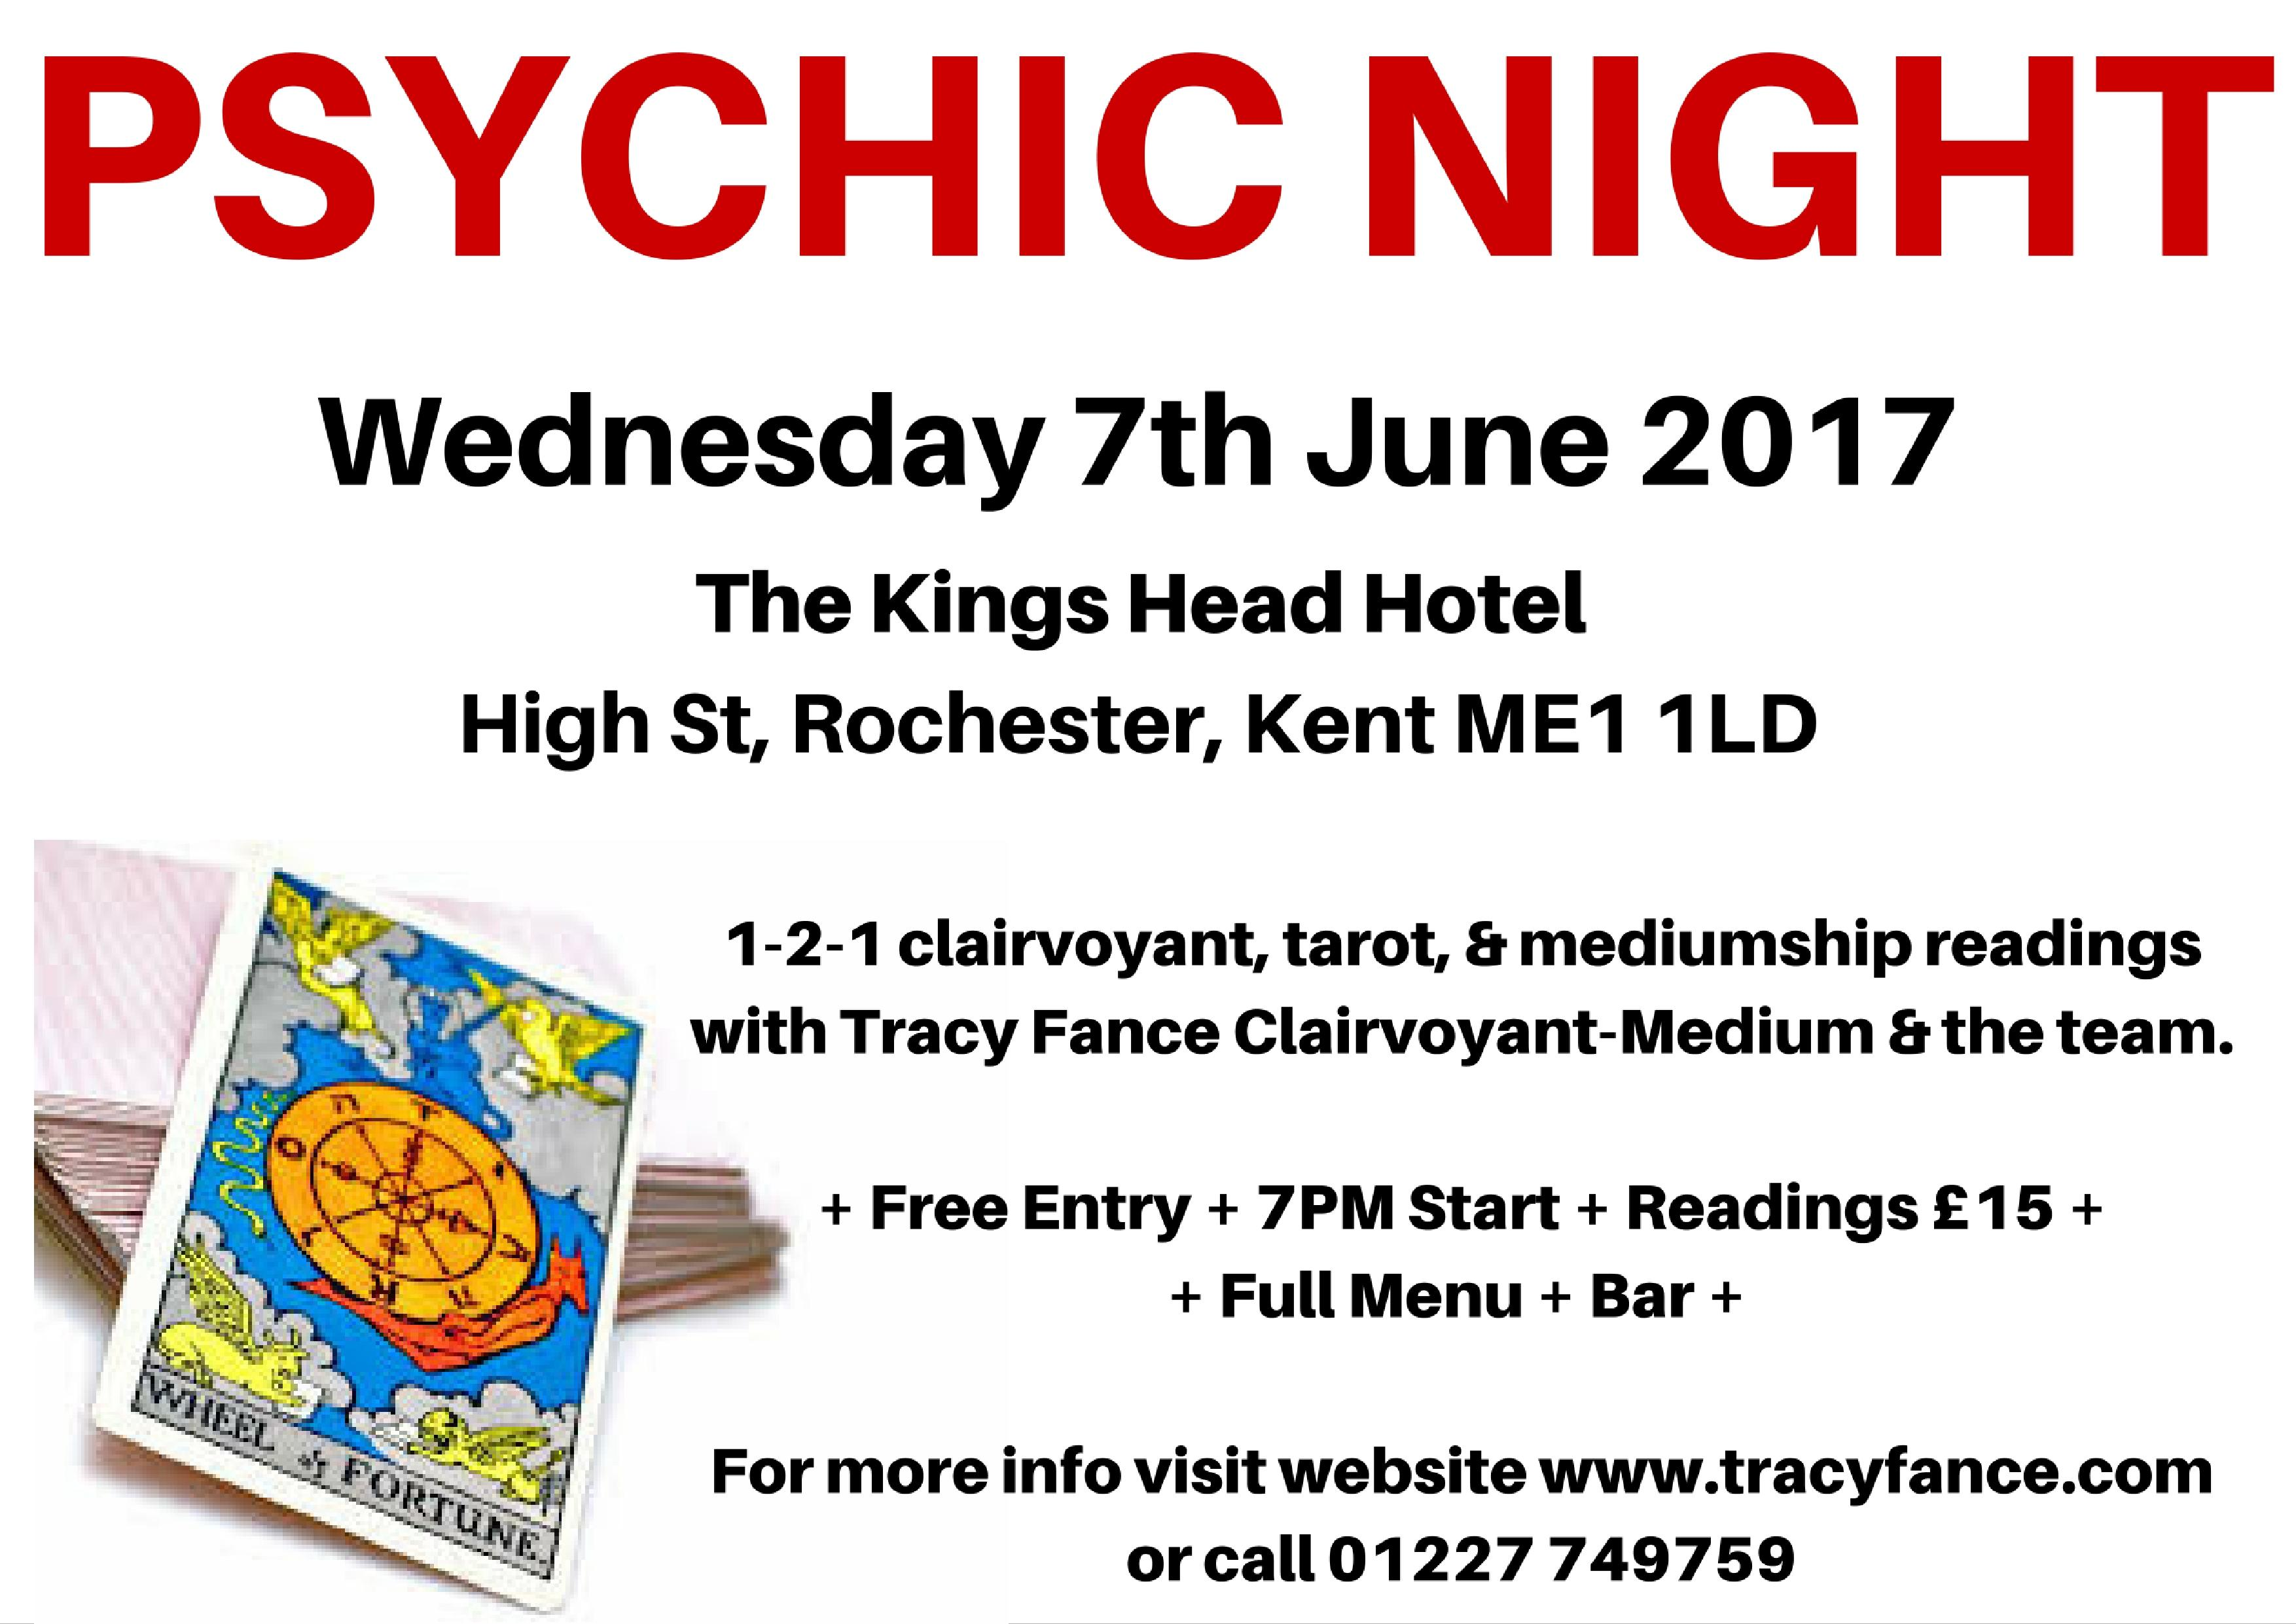 tracy fance presents psychic night - 7th june 2017 @ the kings